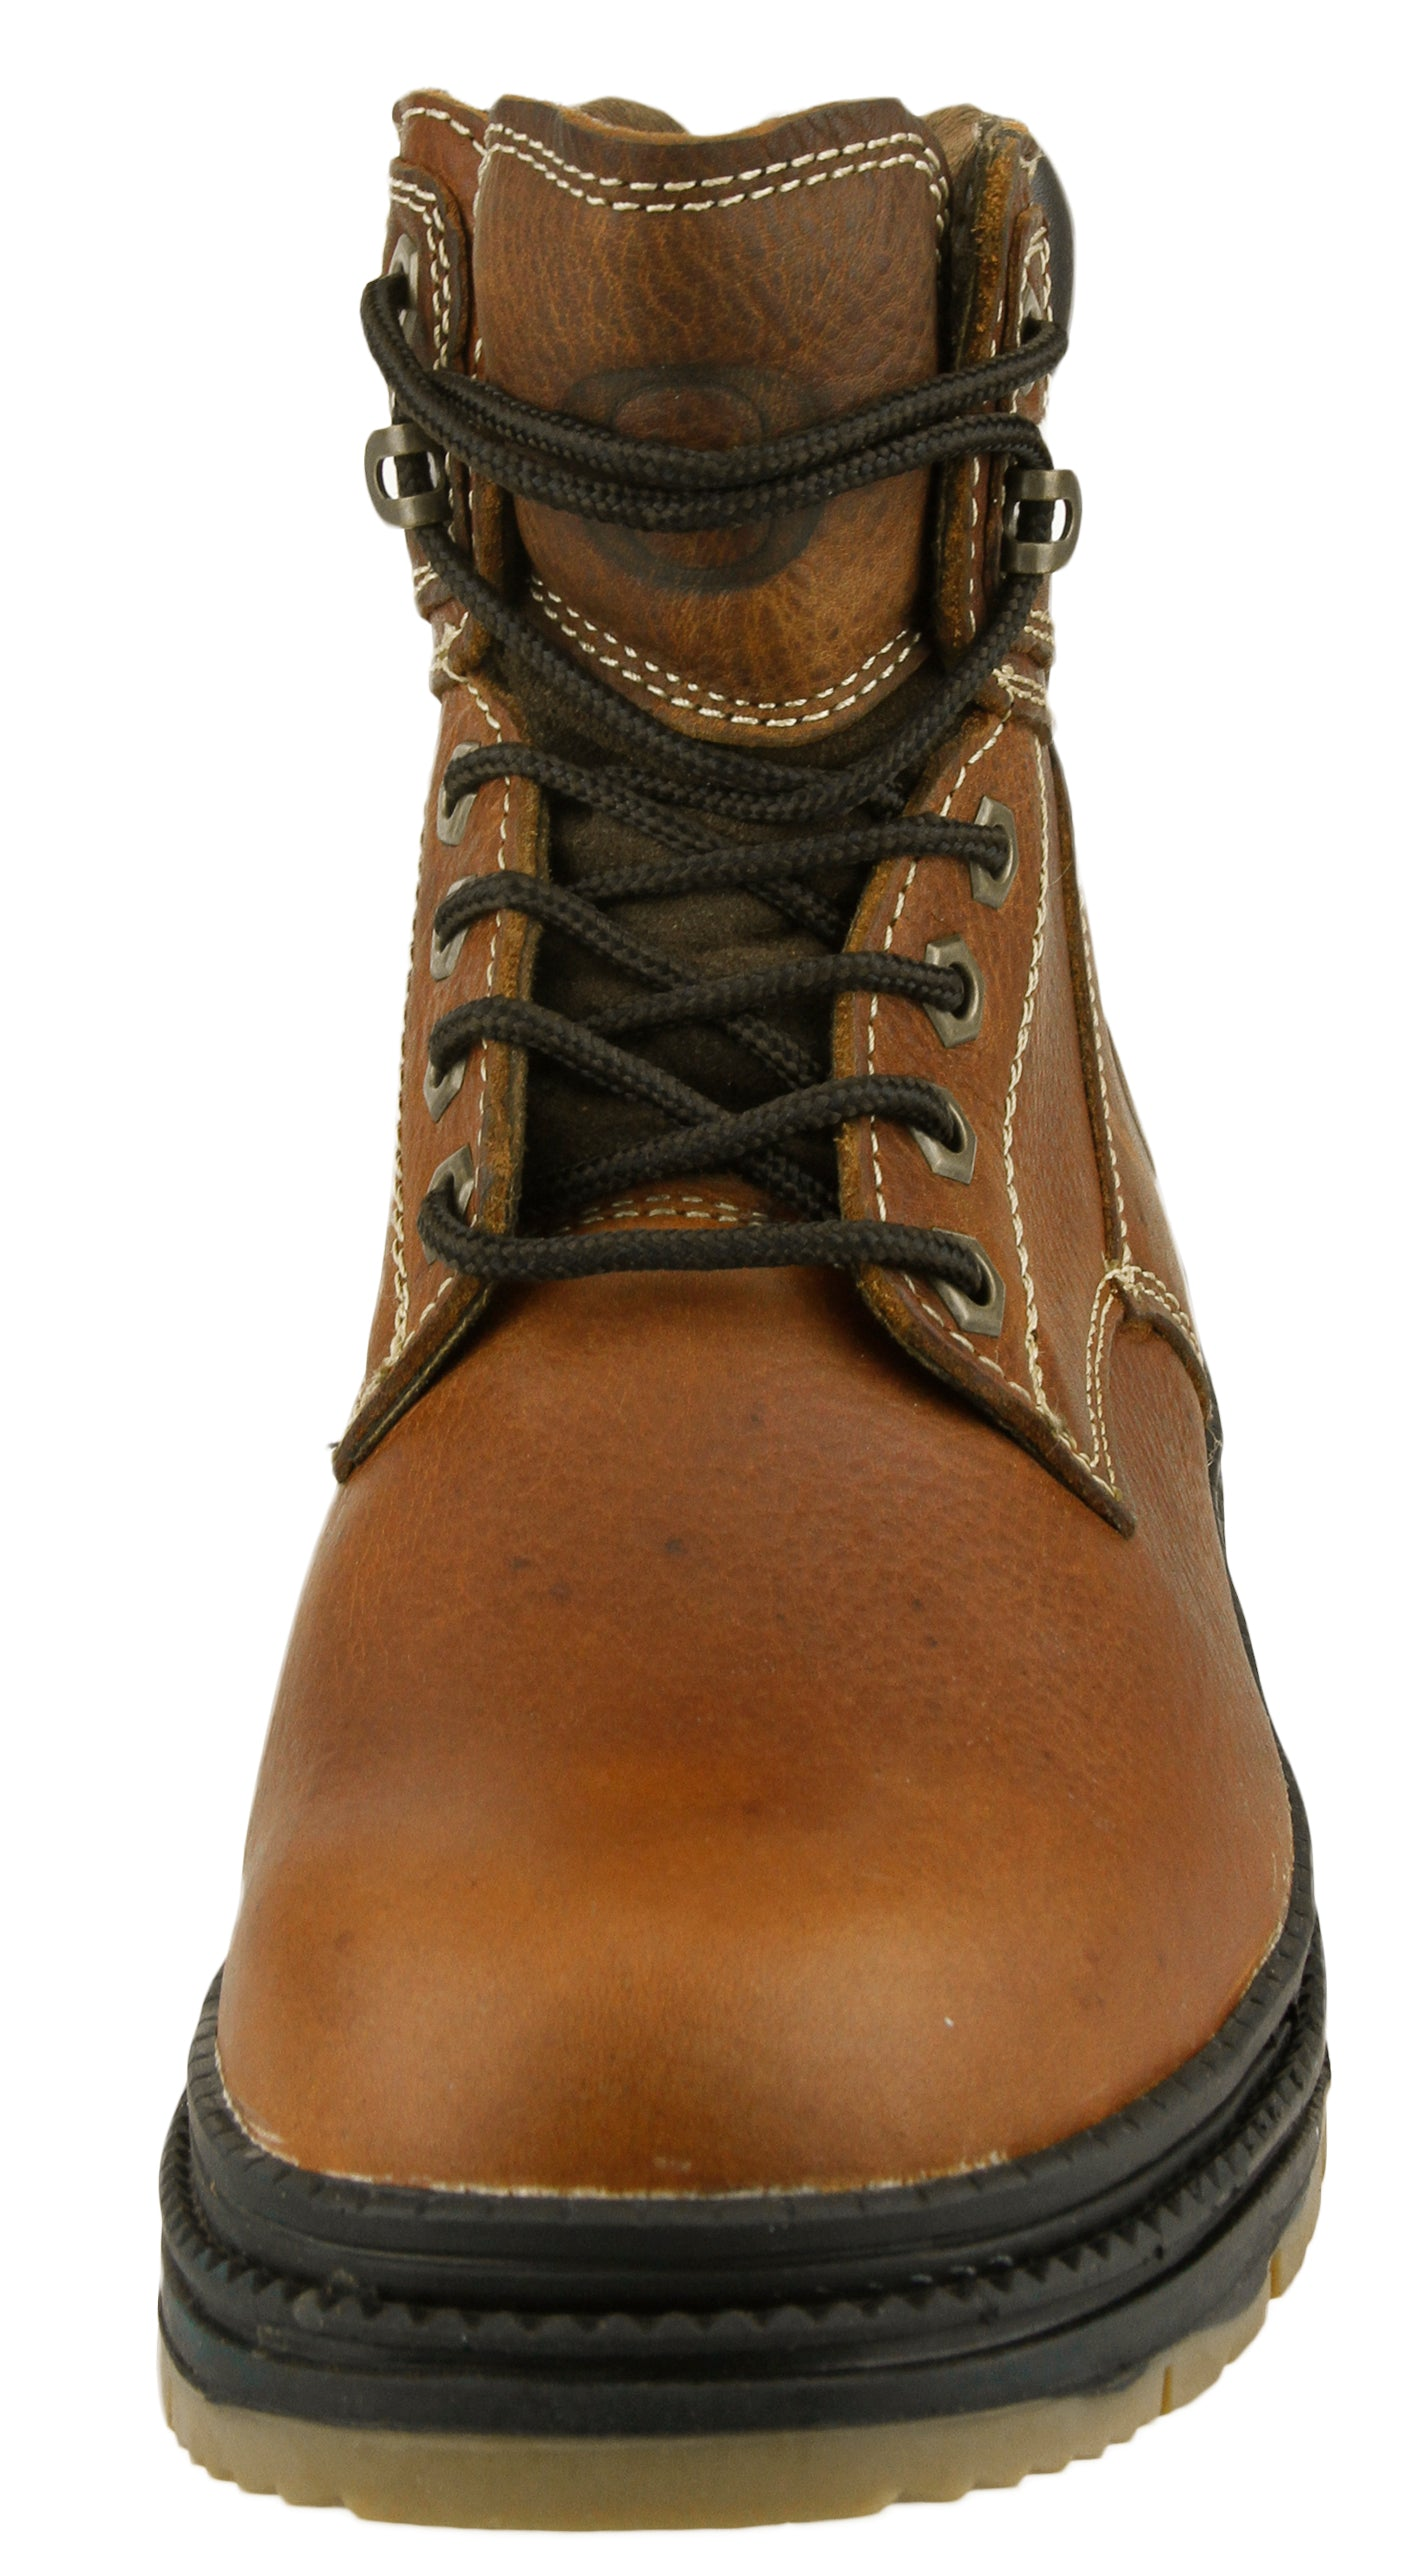 Oregon Ducks NCAA Mens Rounded Steel Toe Lace up Leather Work Boots Brown